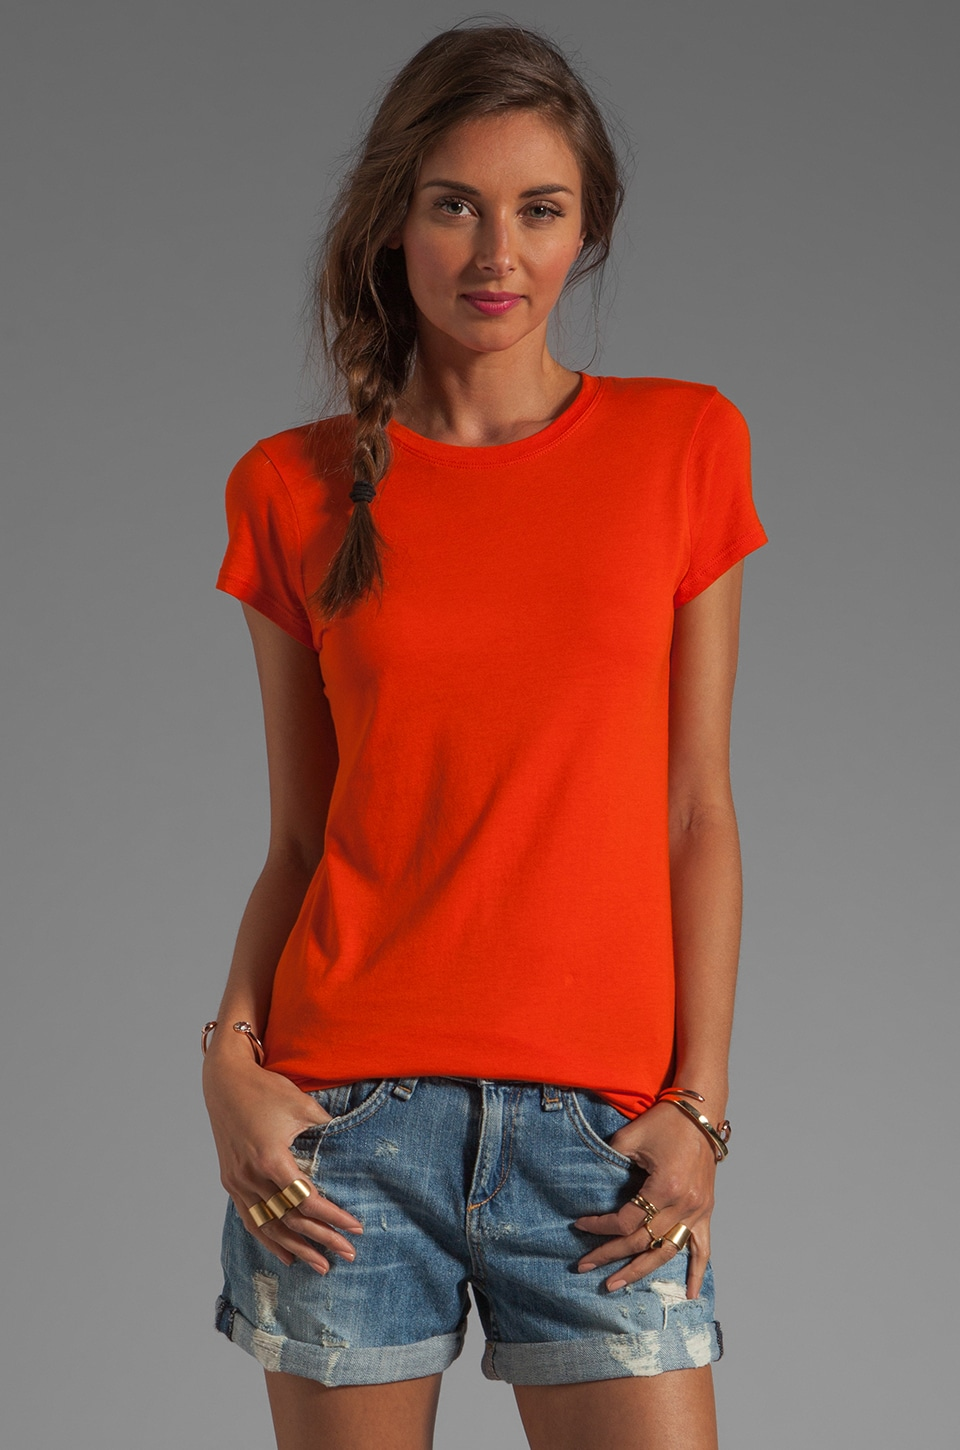 Vince Little Boy Tee in Persimmon